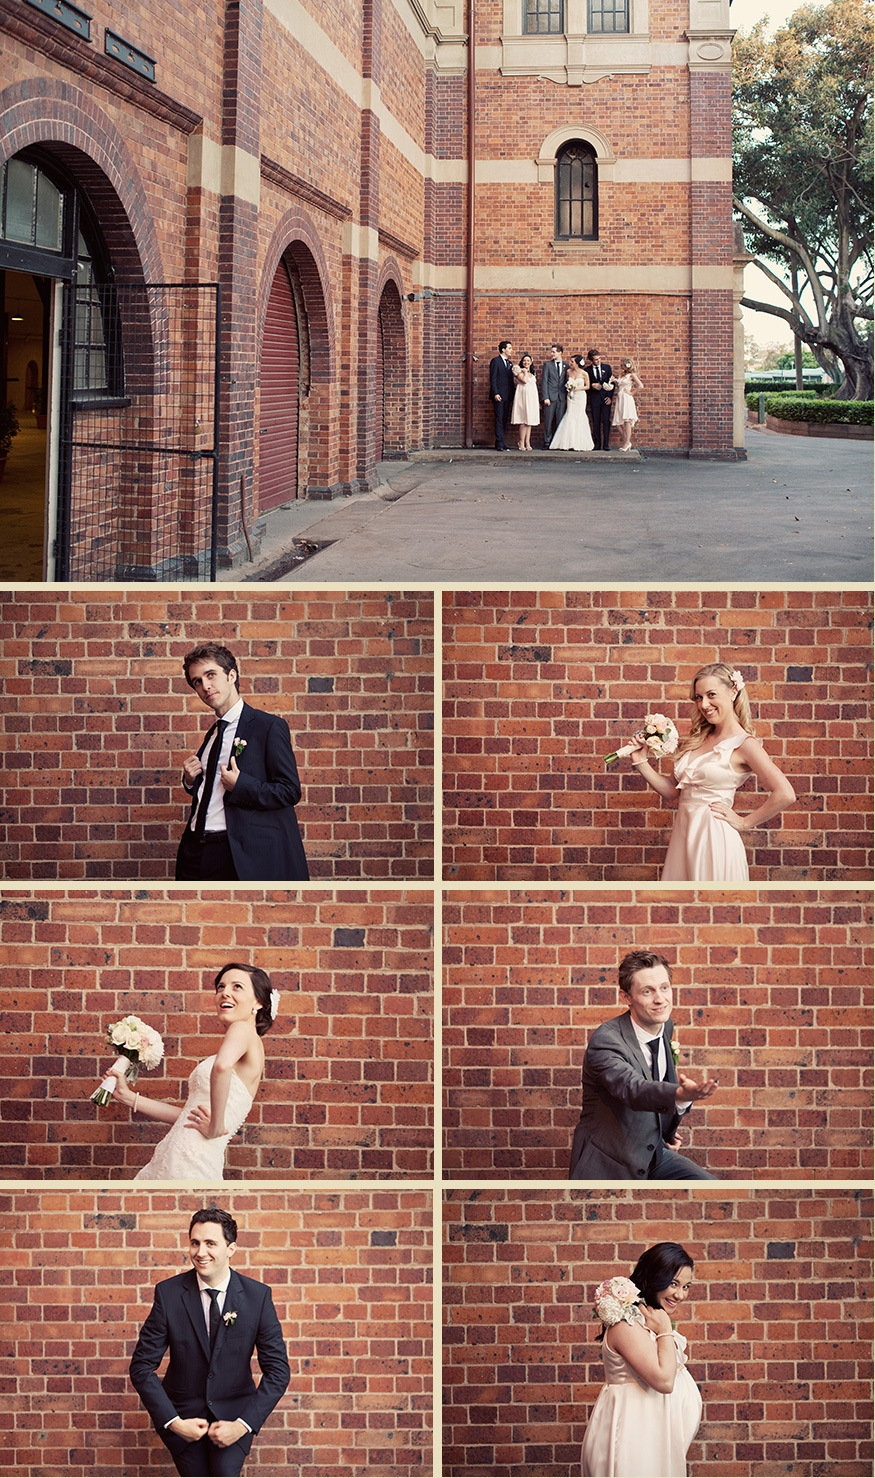 Brisbane Wedding Phoographer Blog-collage-1326319680218